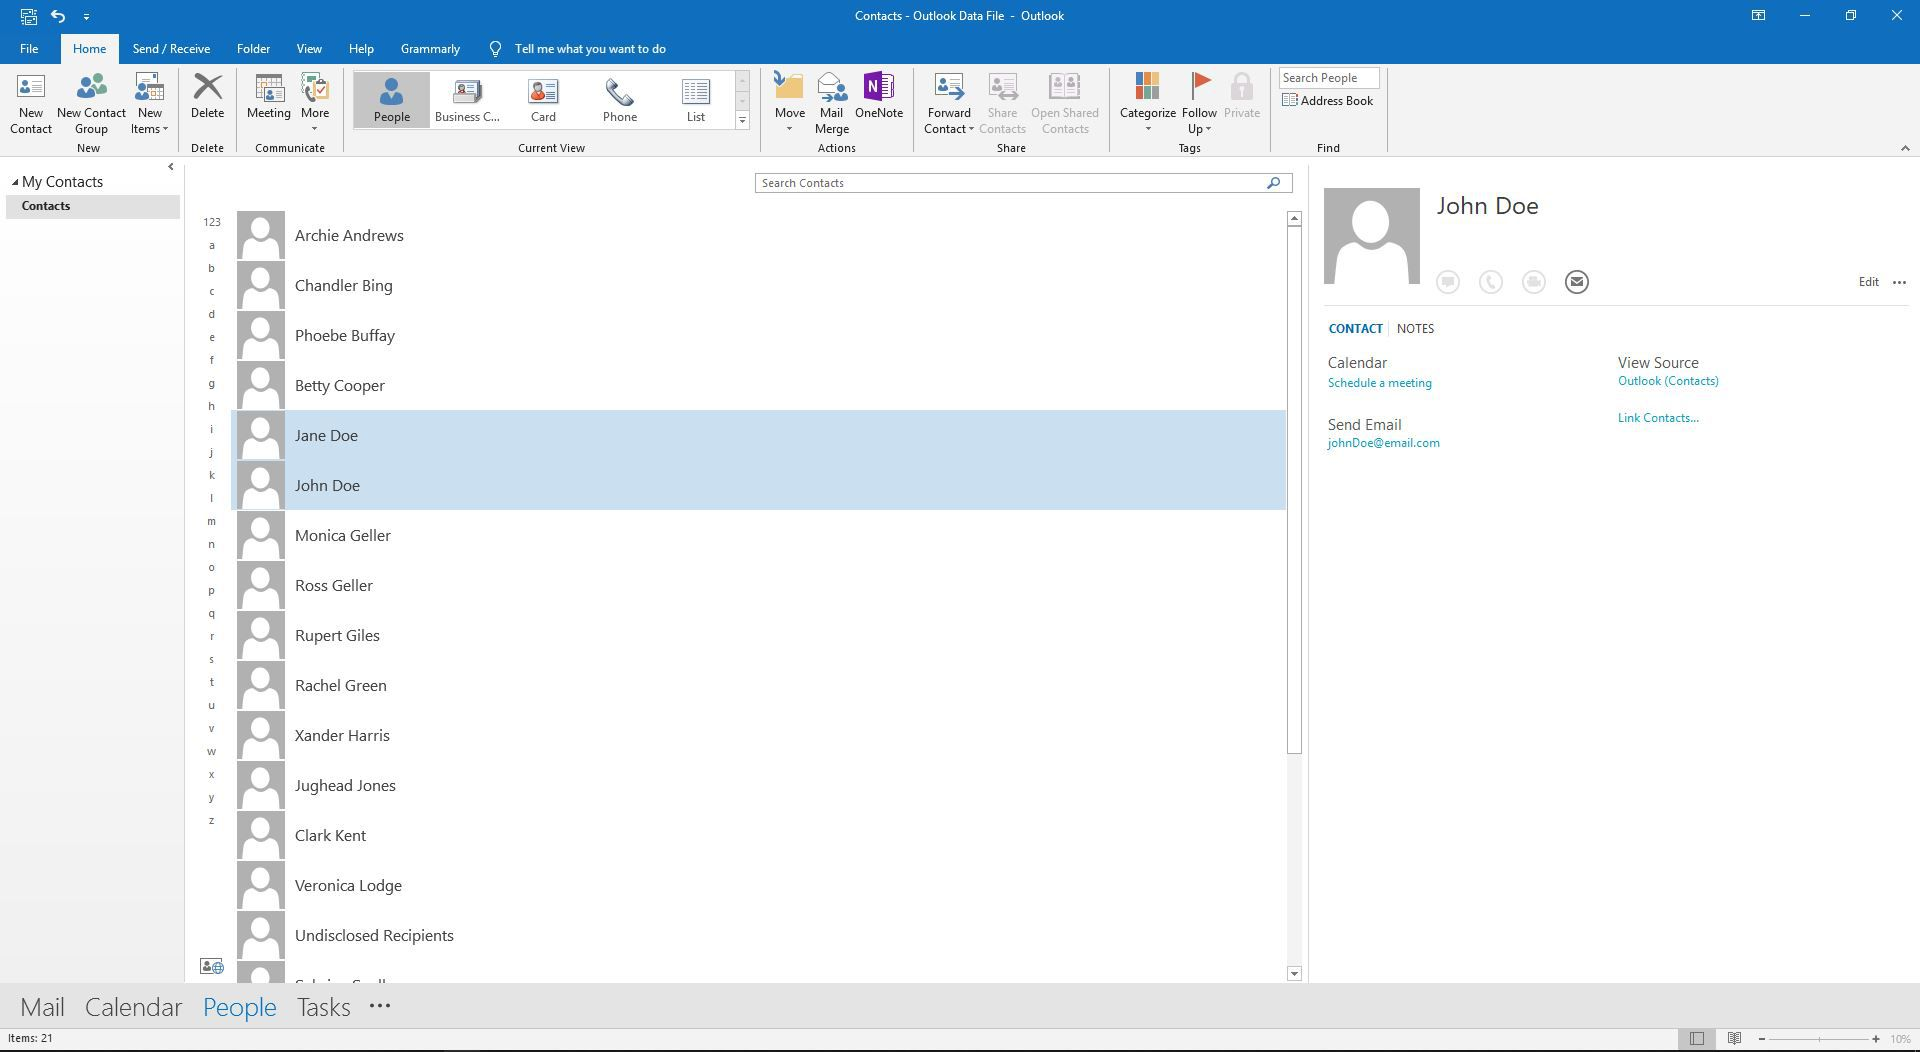 Two contacts are highlighted in Outlook